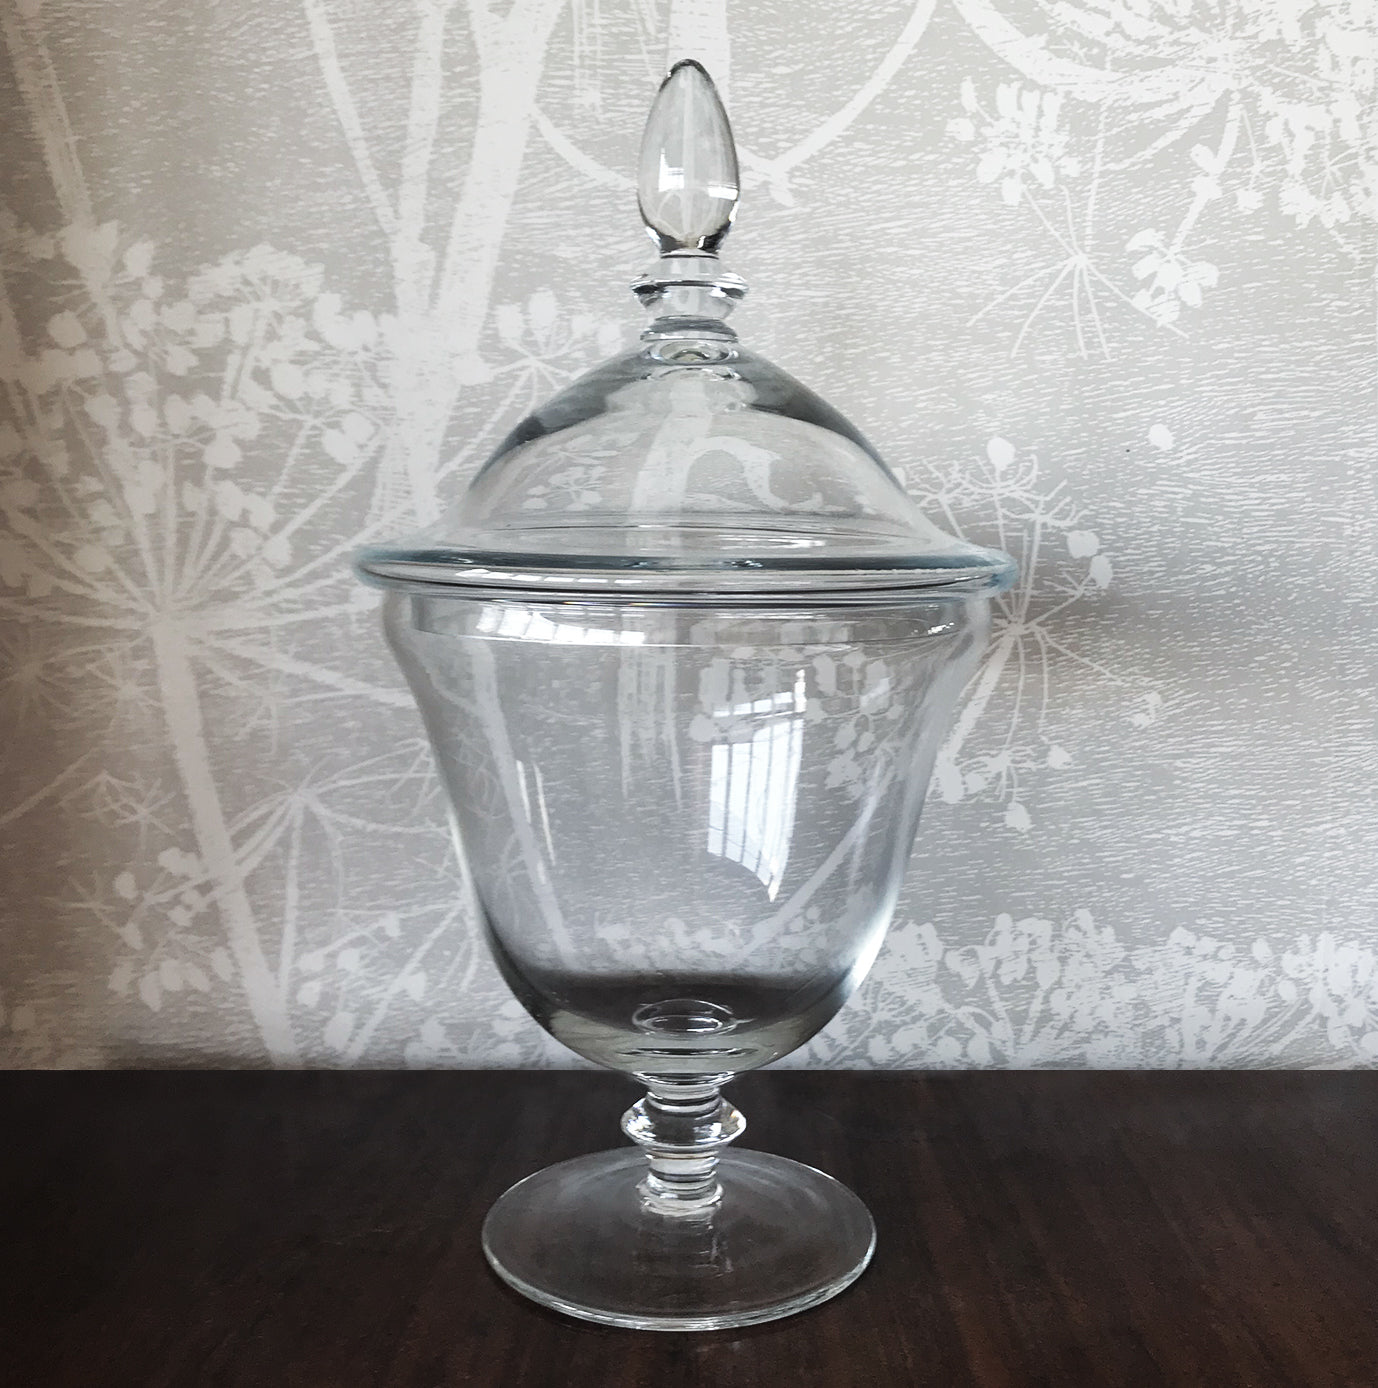 Large vintage blown glass chemist's apothecary jar - SHOP NOW - www.intovintage.co.uk